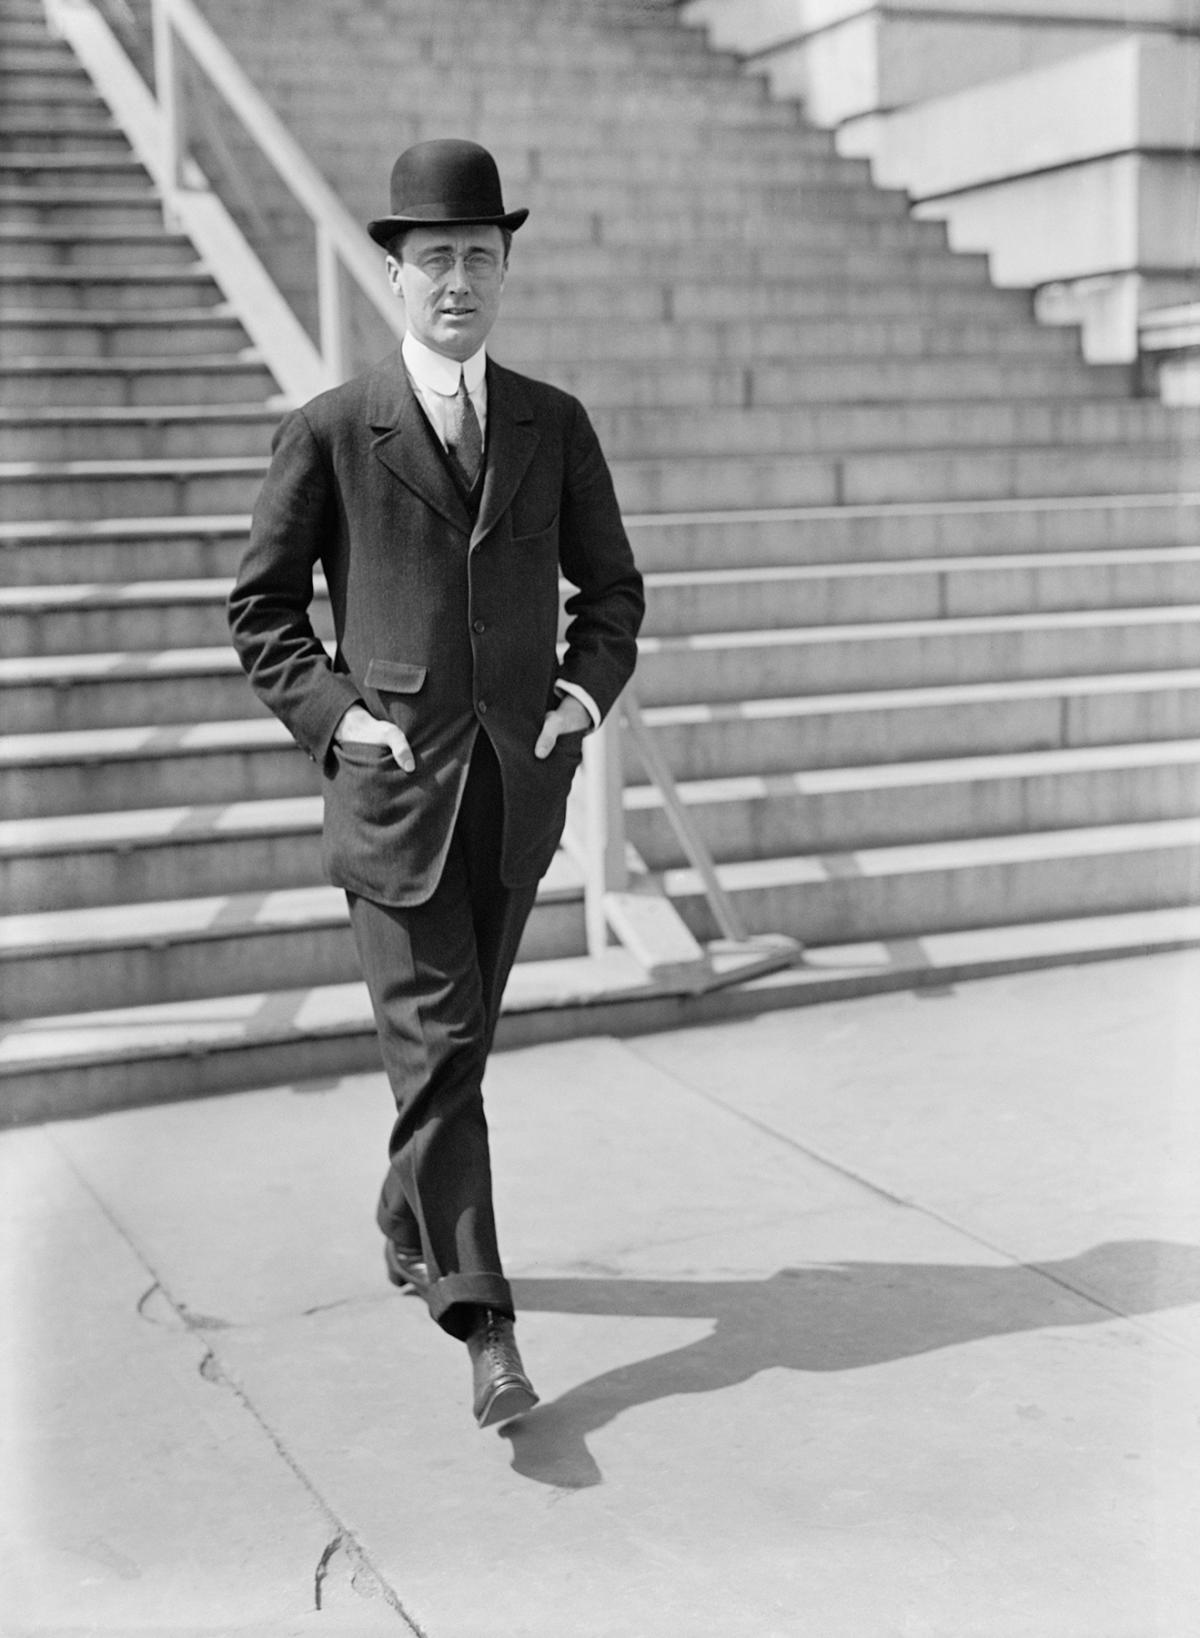 Young FDR in a bowler hat and dark suit